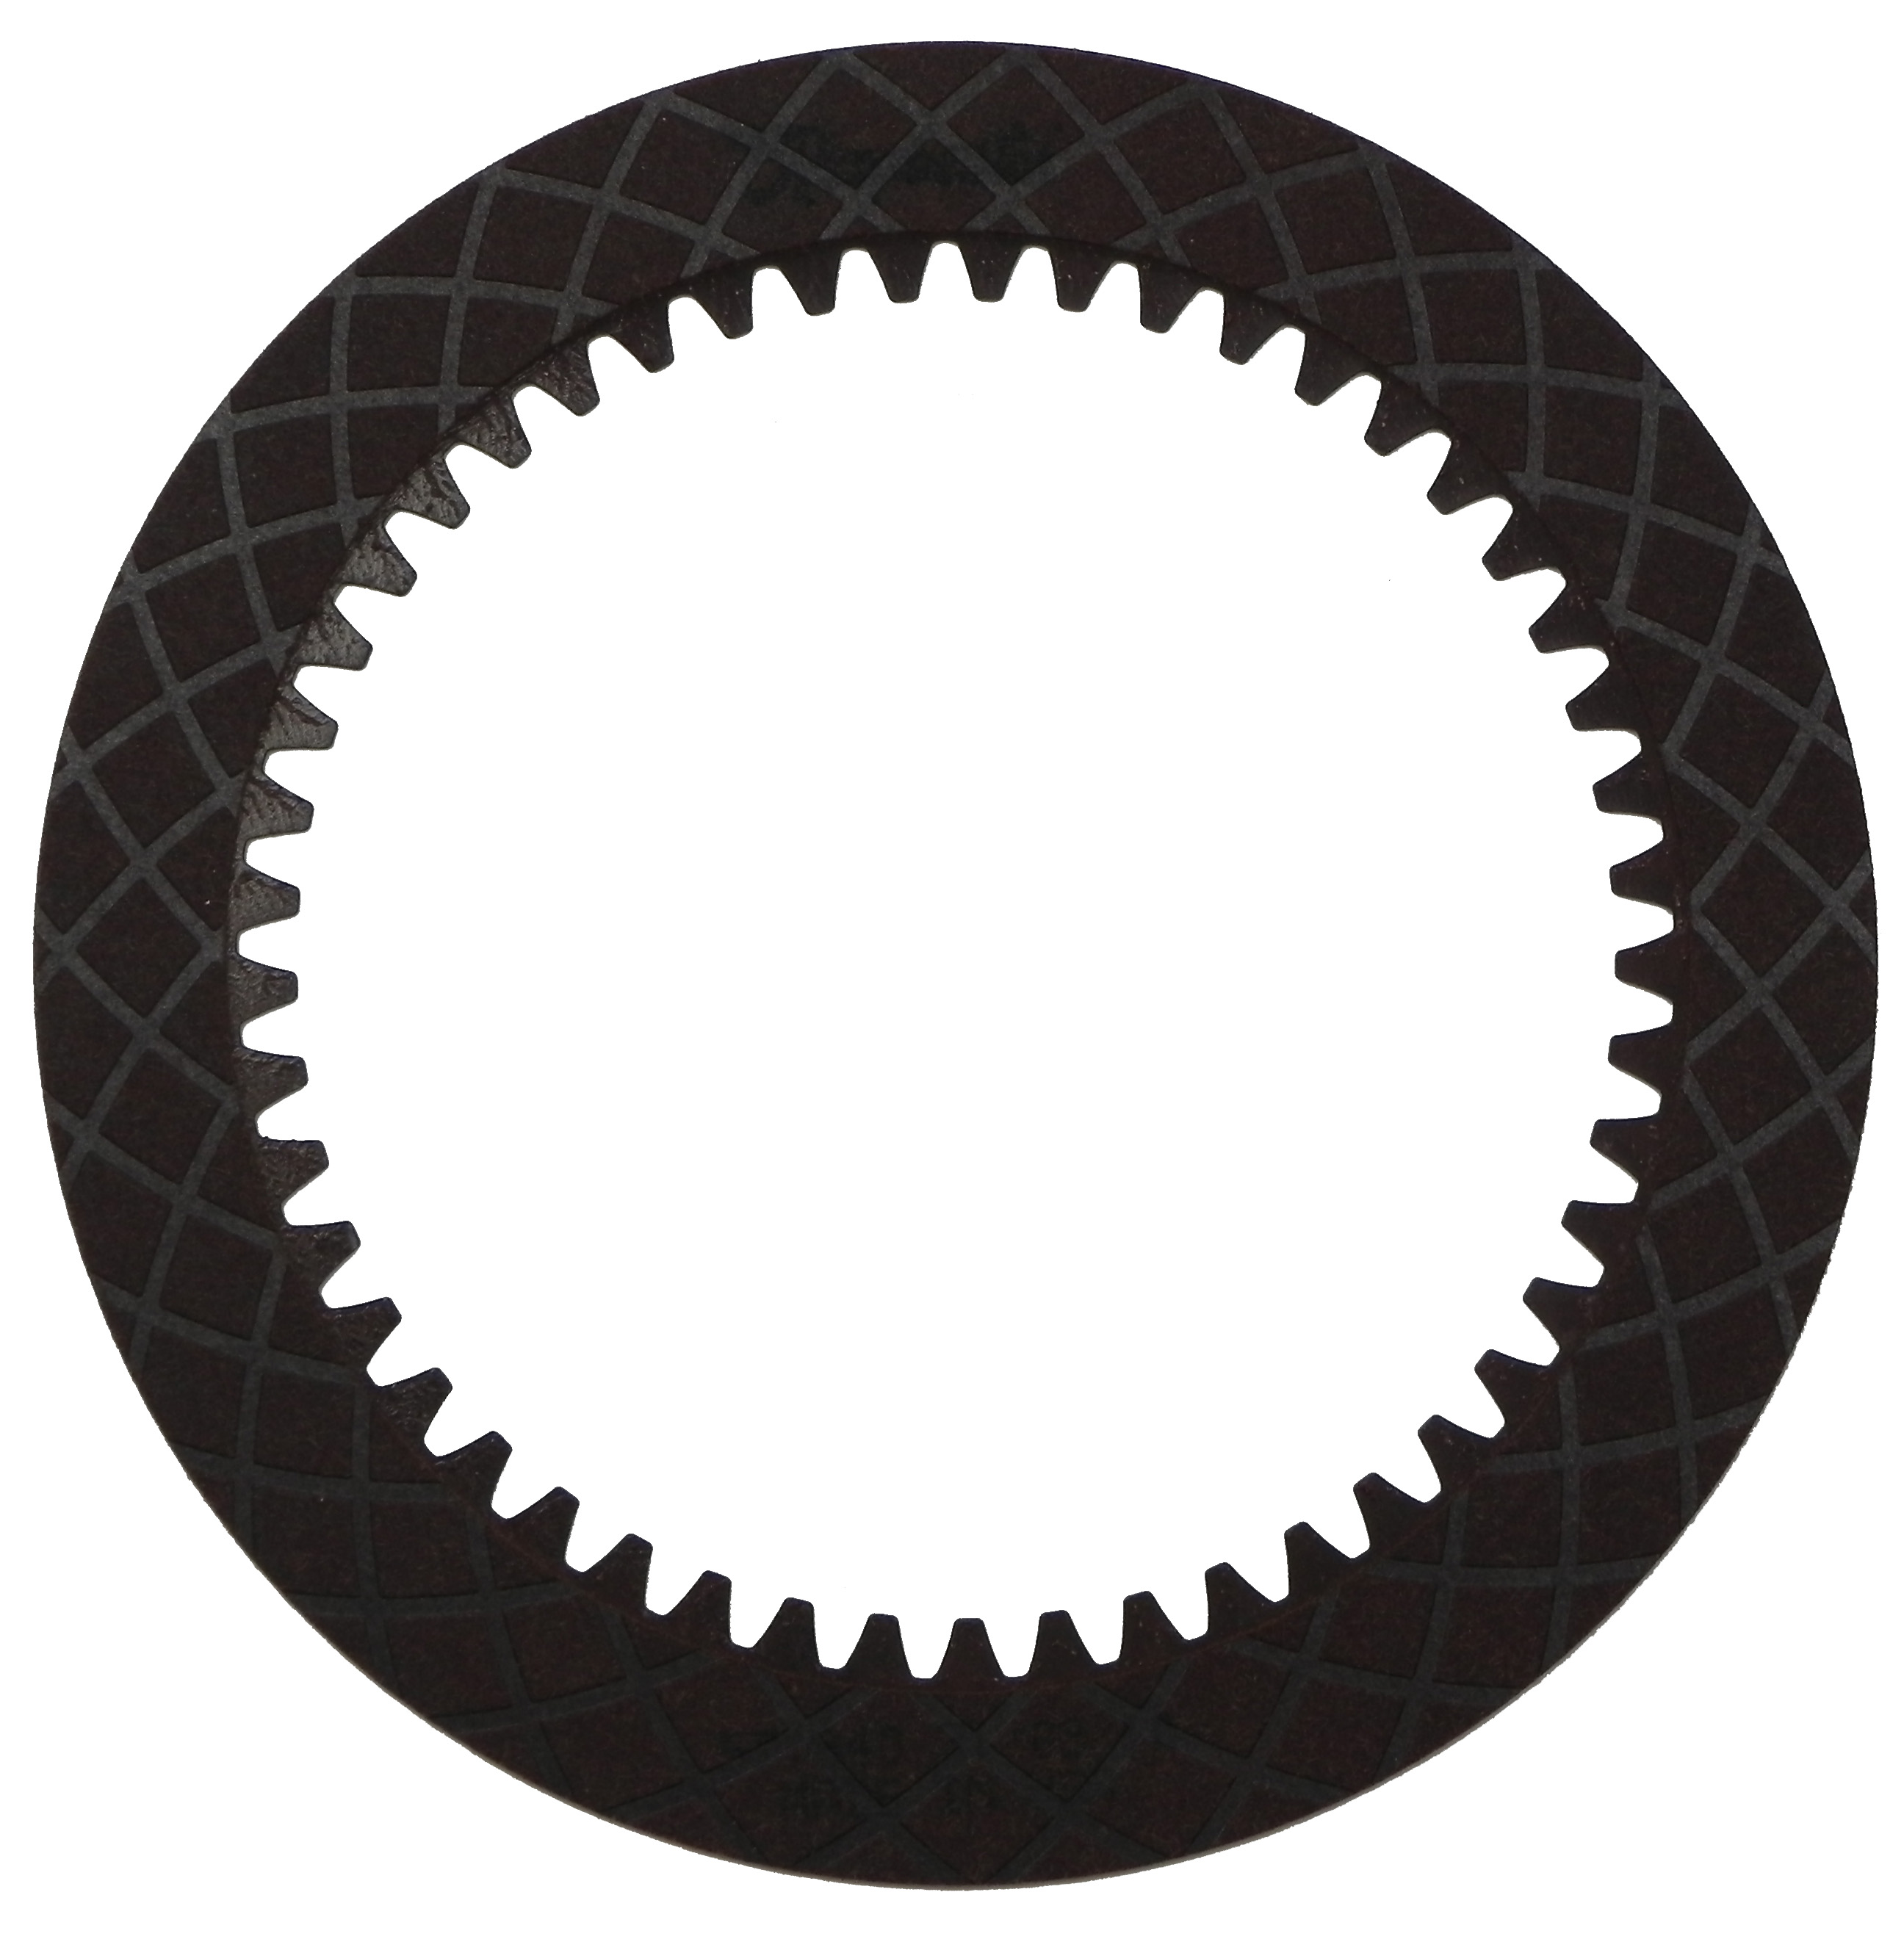 R571840 | 2005-2008 Friction Clutch Plate GPX 1st GPX